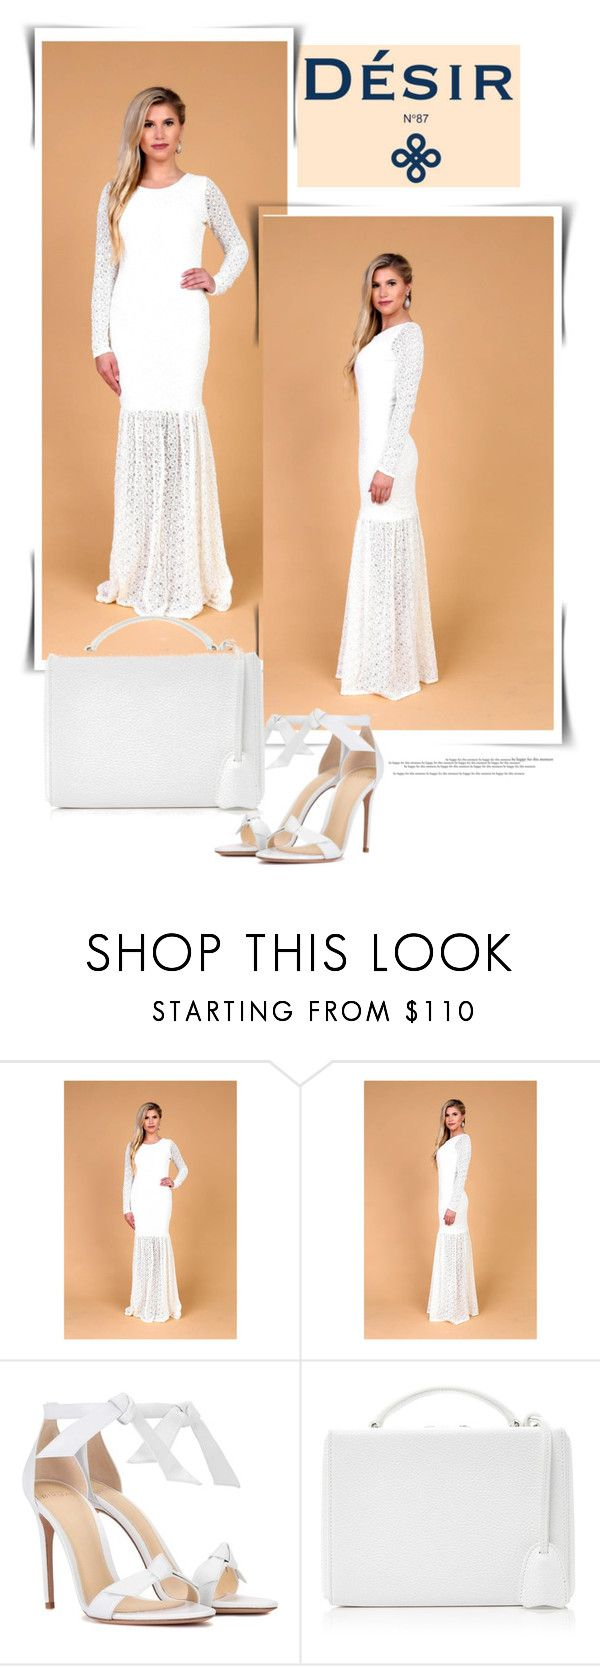 """""""DesirVale"""" by newoutfit ❤ liked on Polyvore featuring Alexandre Birman, Mark Cross, StreetStyle, chic and dress"""